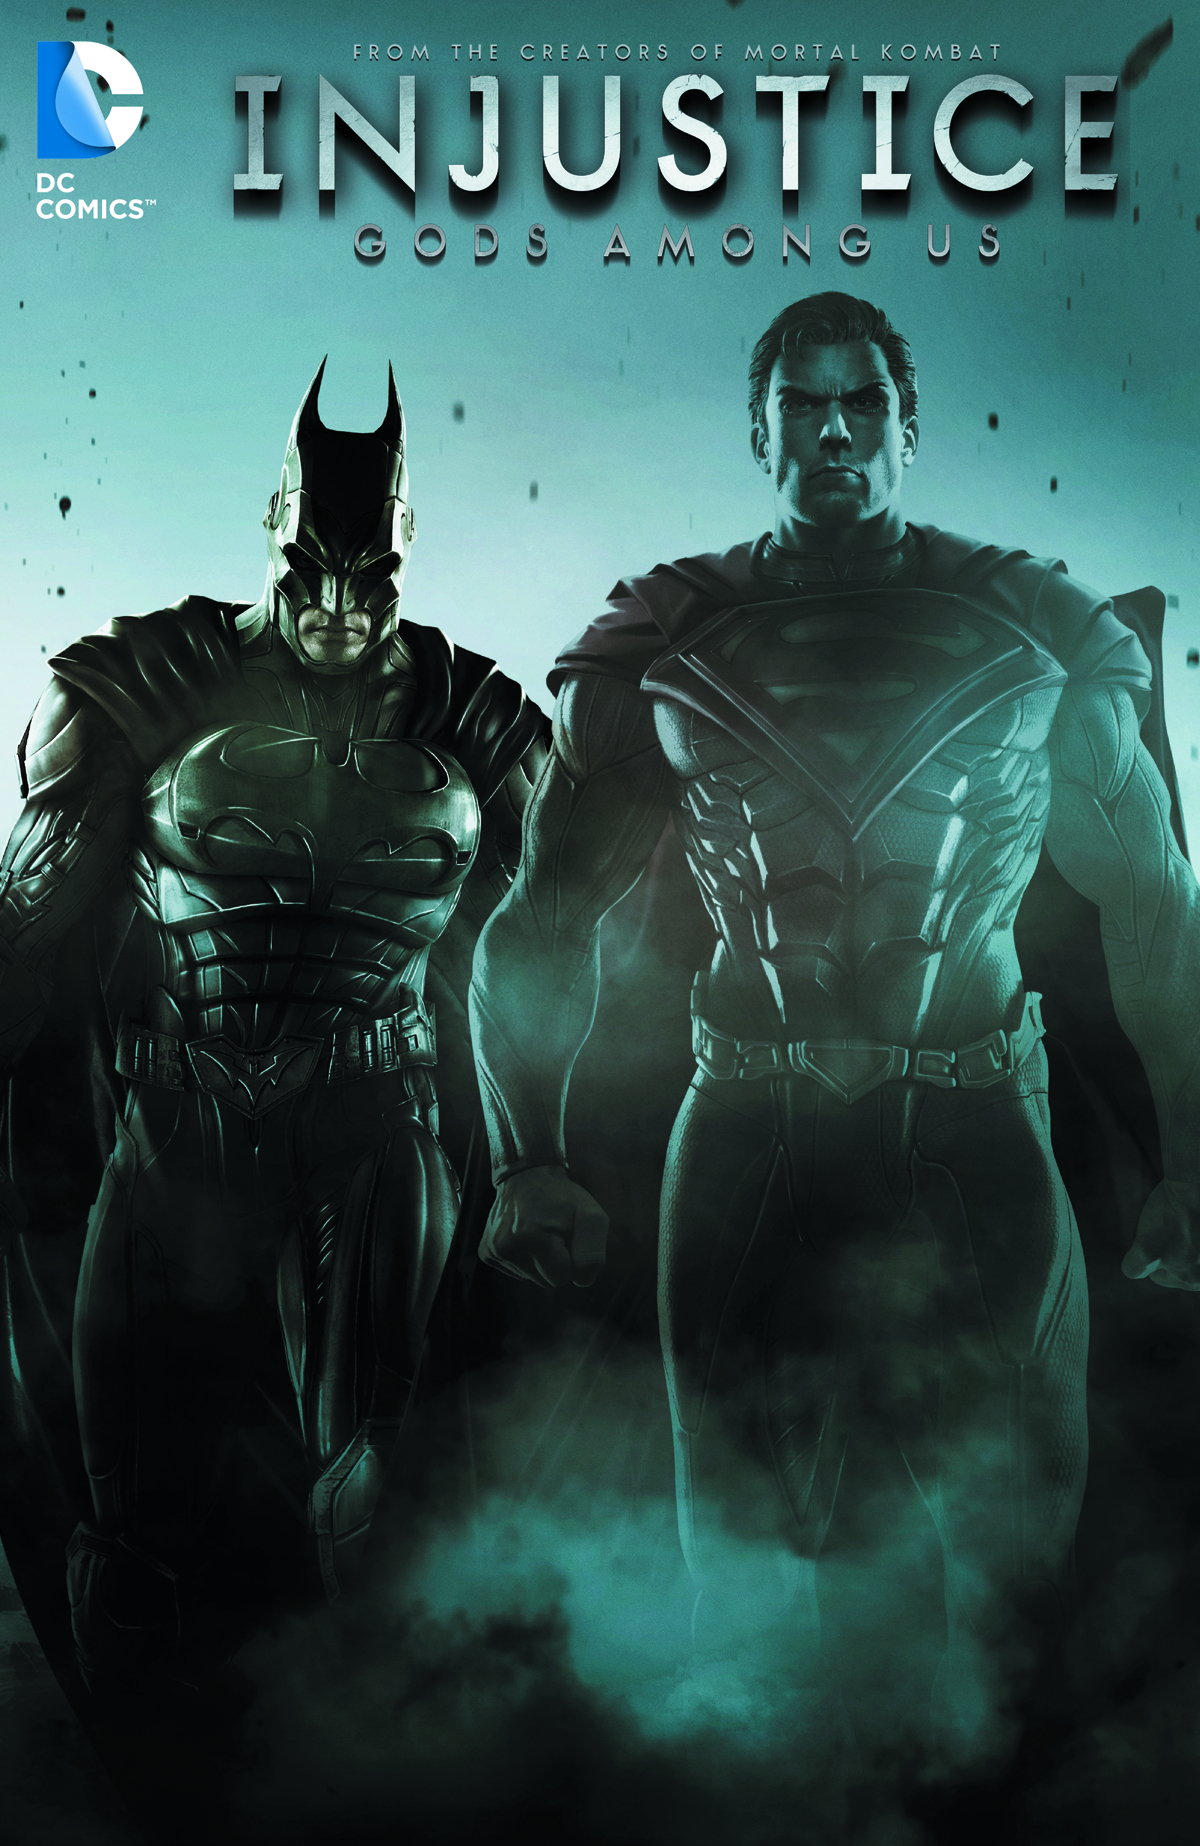 INJUSTICE GODS AMONG US HC VOL 02